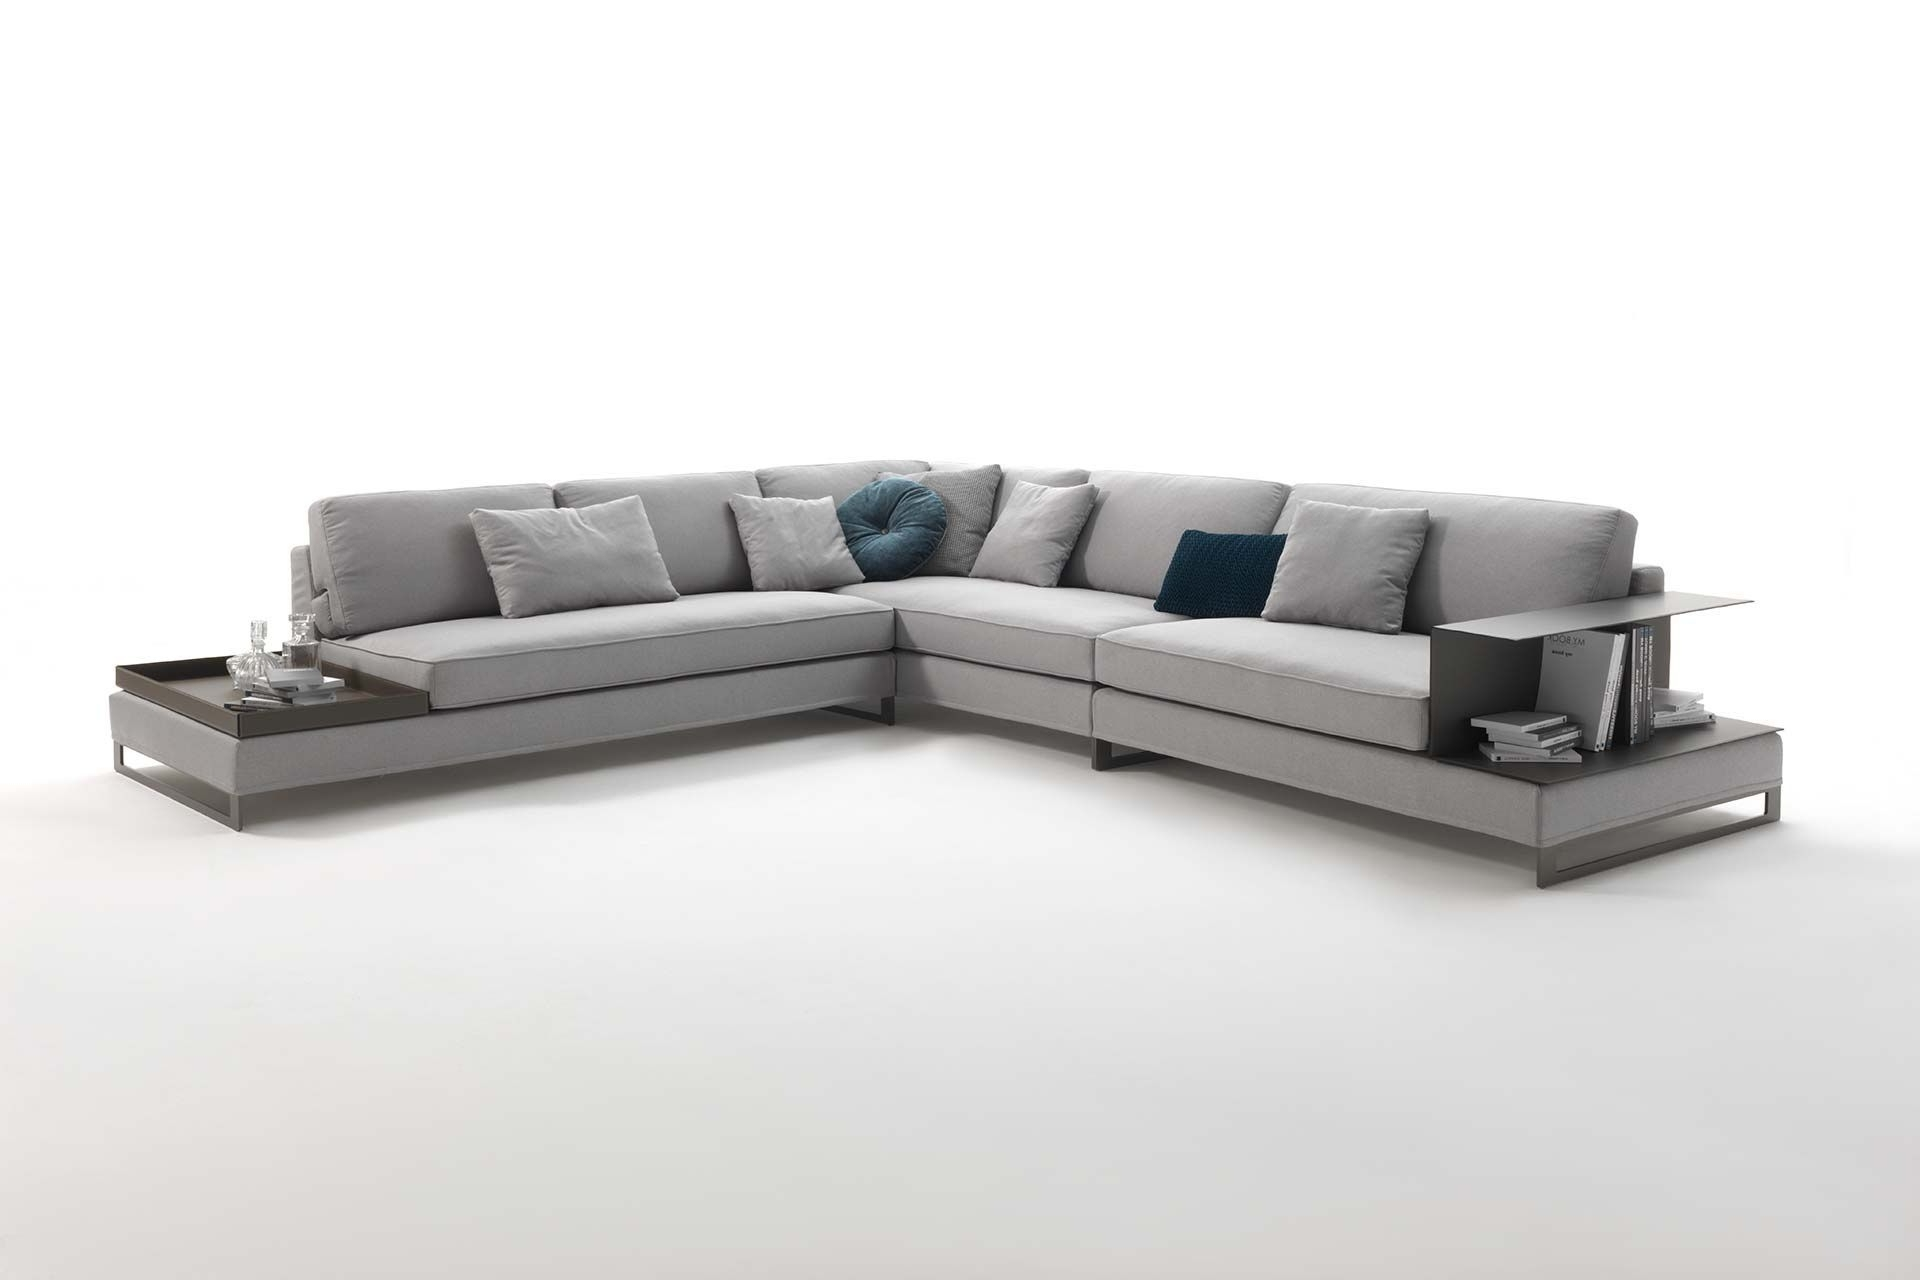 Preferred Modular Sofa / Contemporary / Fabric / Leather – Davis Case With Contemporary Fabric Sofas (View 6 of 20)